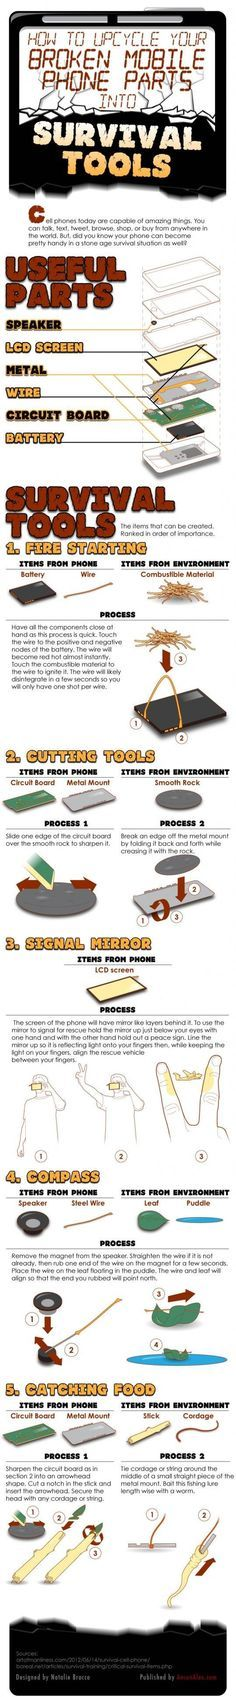 7 Unexpected Items You Can Use As Urban Survival Tools | Survival Weapons and Hacks by Survival Life http://survivallife.com/2014/04/07/urban-survival-7-tools-didnt-know-save-life/